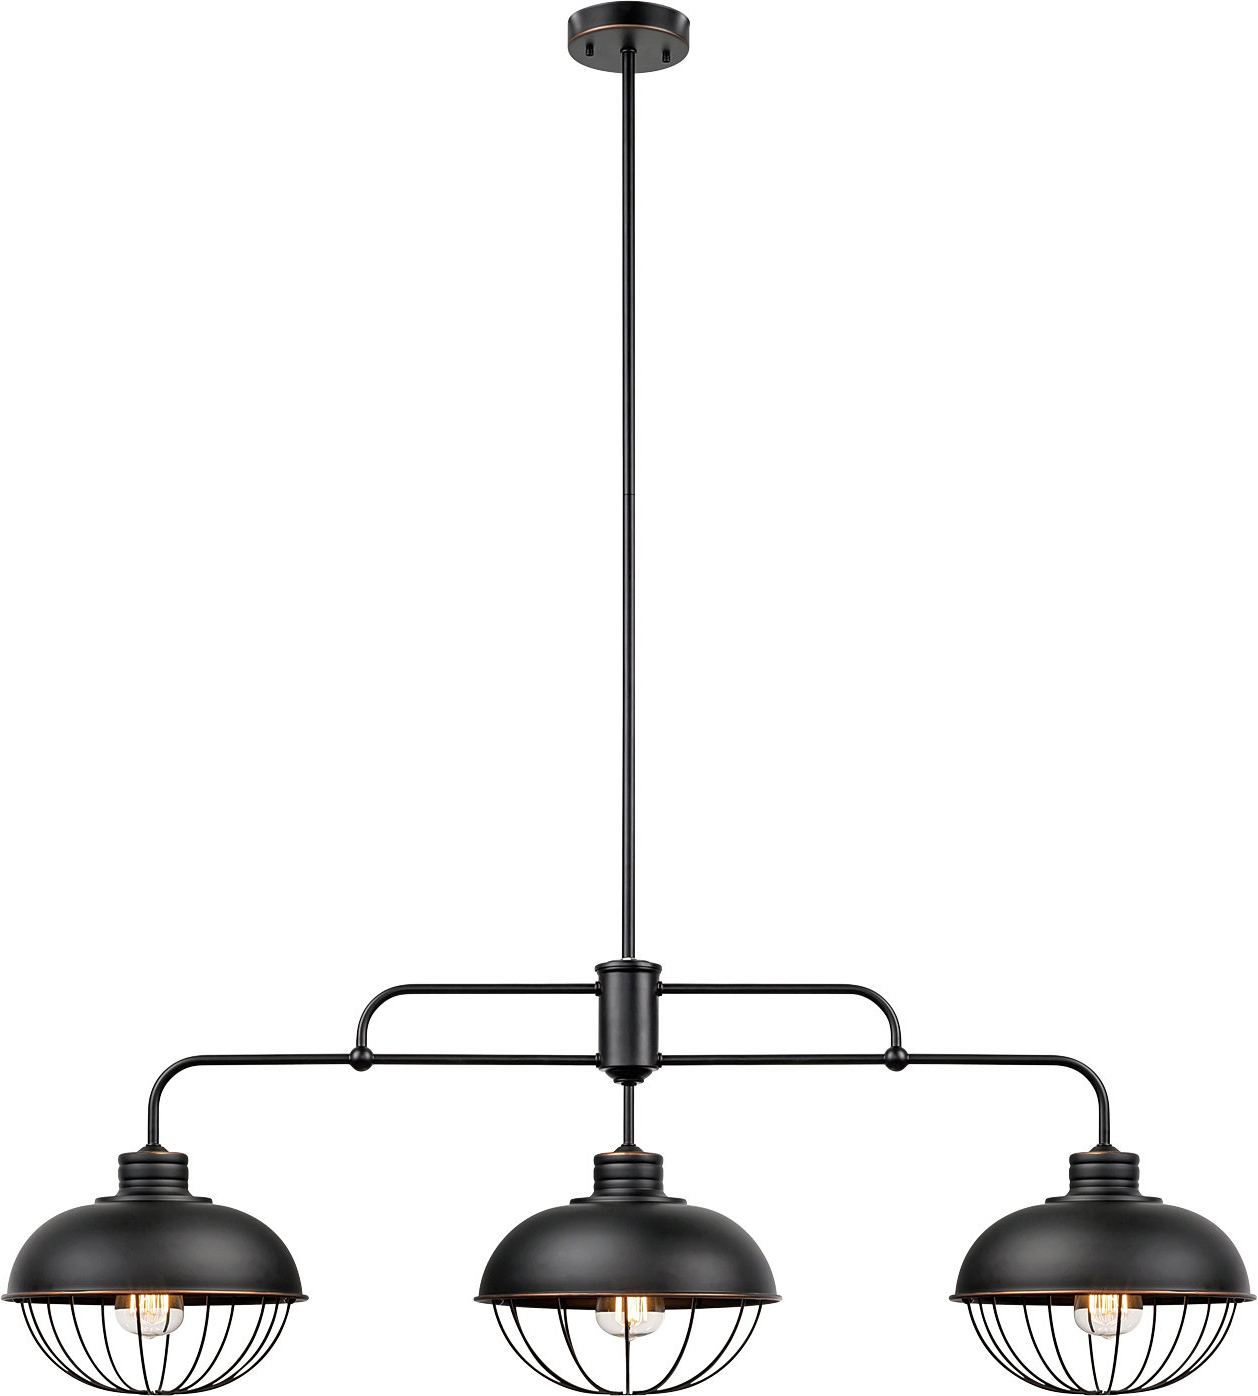 Kathi 3 Light Kitchen Island Linear Pendant With Latest Dunson 3 Light Kitchen Island Pendants (Gallery 10 of 20)